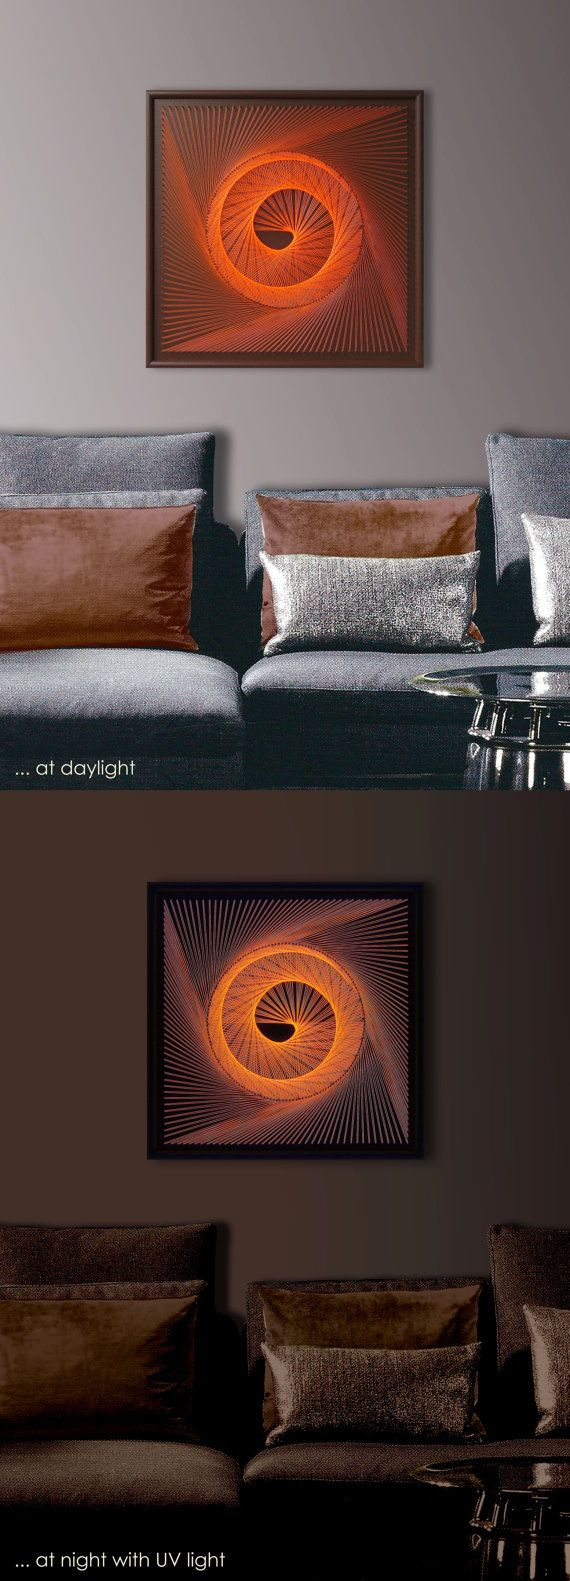 UV Wall Art, The Spin in Orange, Abstract Spiritual Zen Wall Decor, 3D Modern String Art, Sacred Geometry for Home Office a special Gift